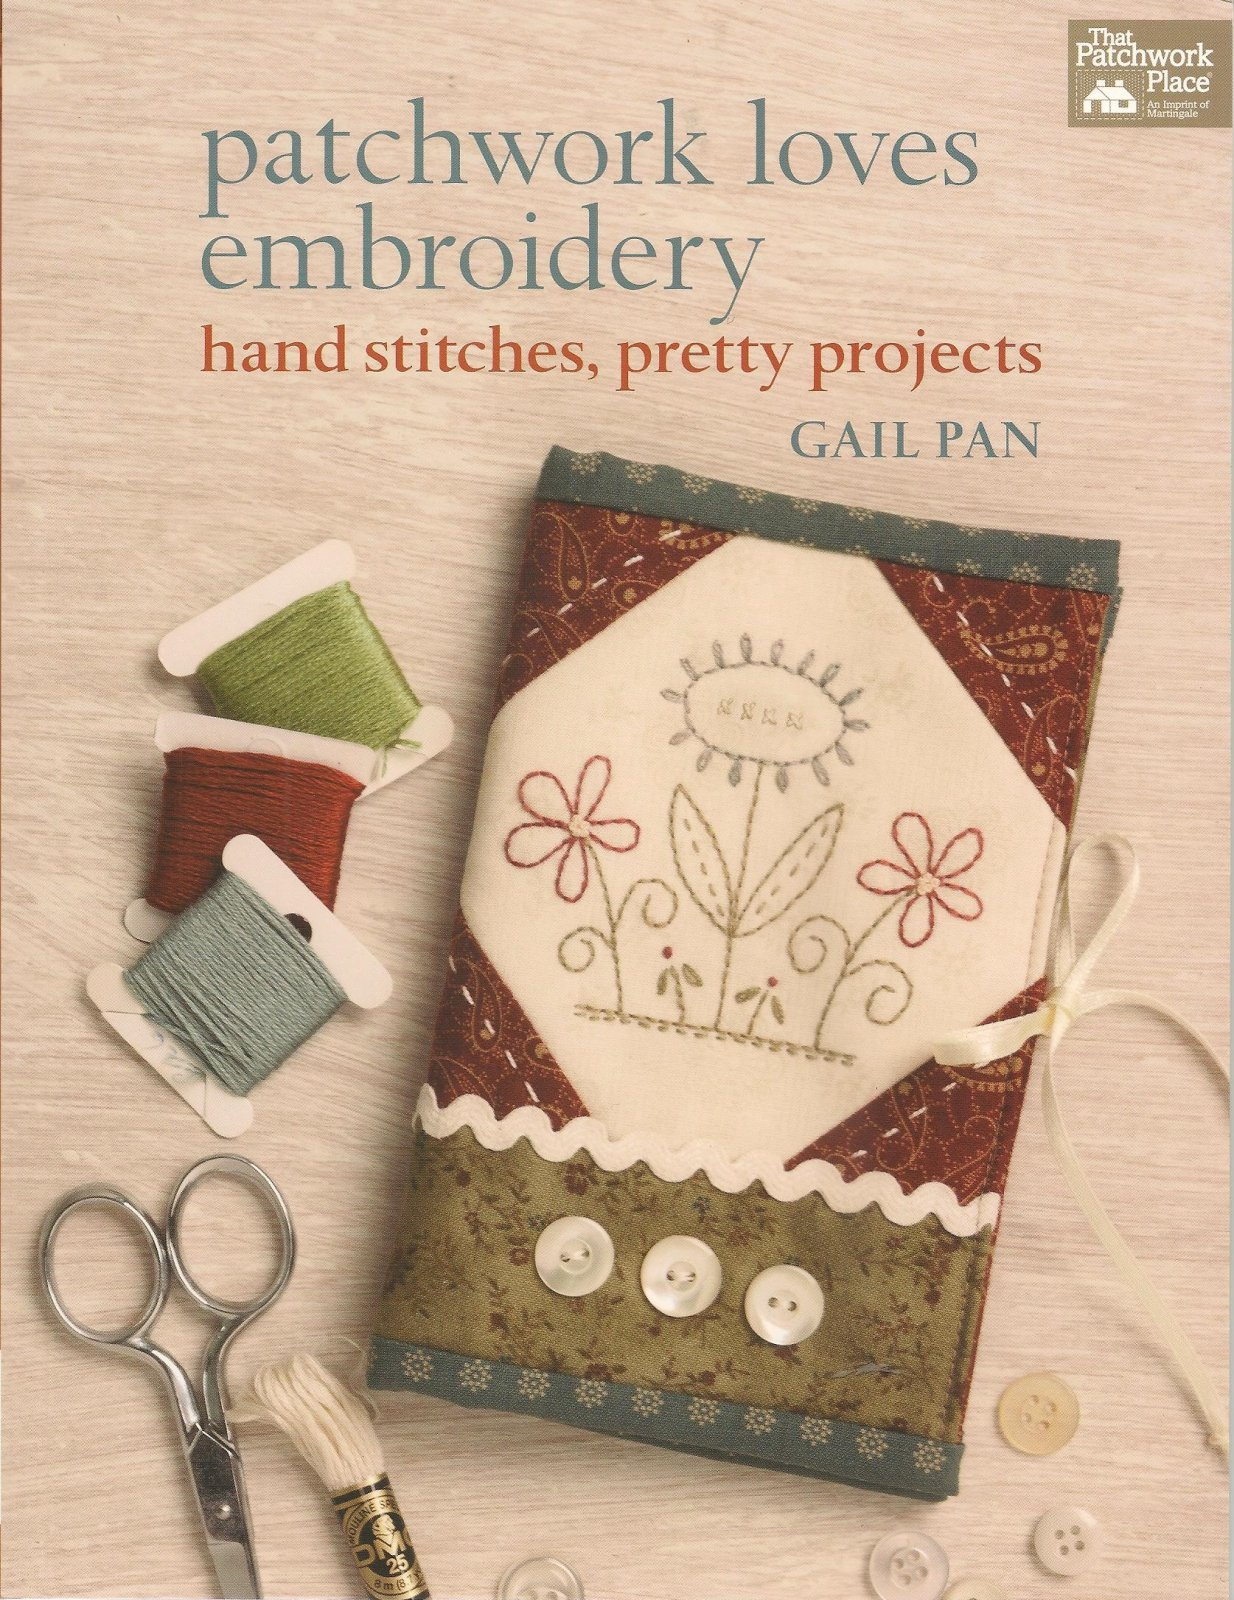 Patchwork Loves Embroidery by Gail Pan